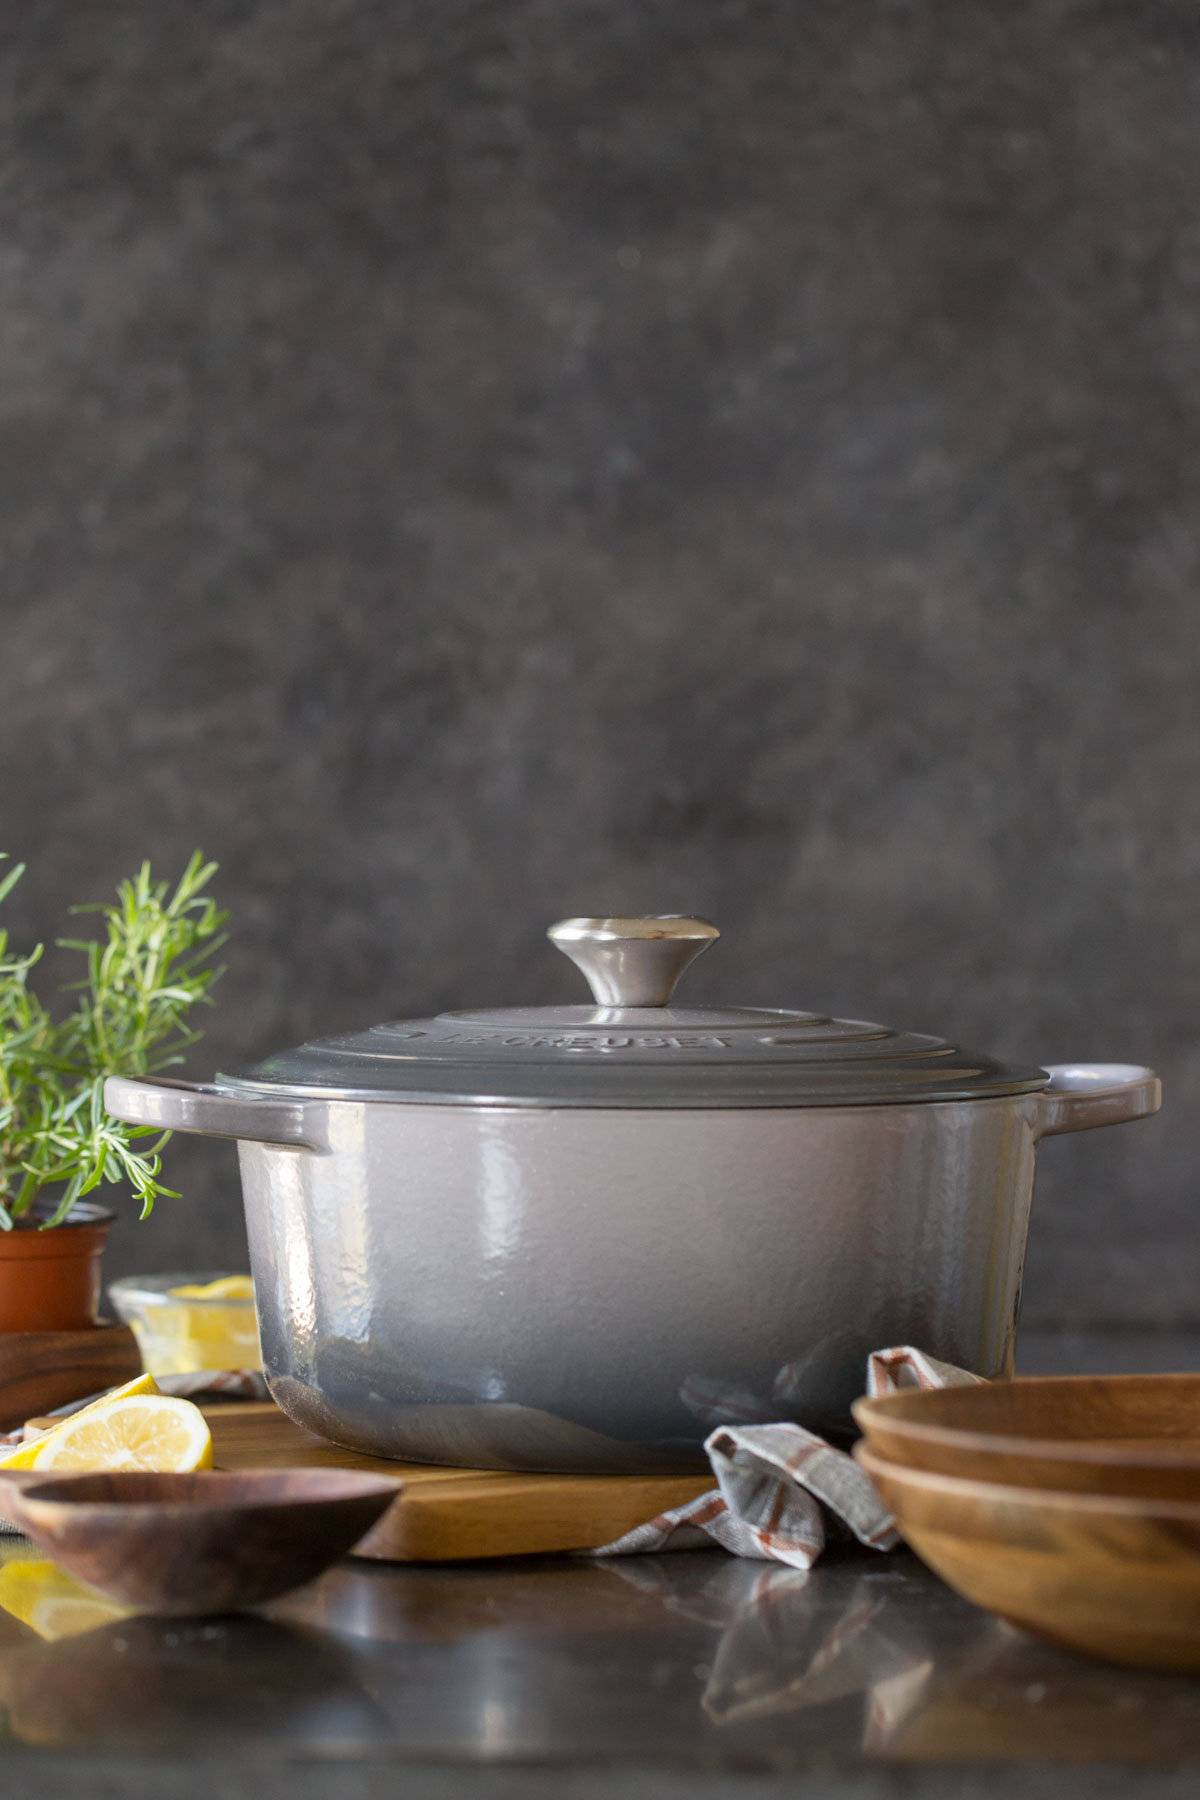 A Le Creuset Dutch oven with the lid on.